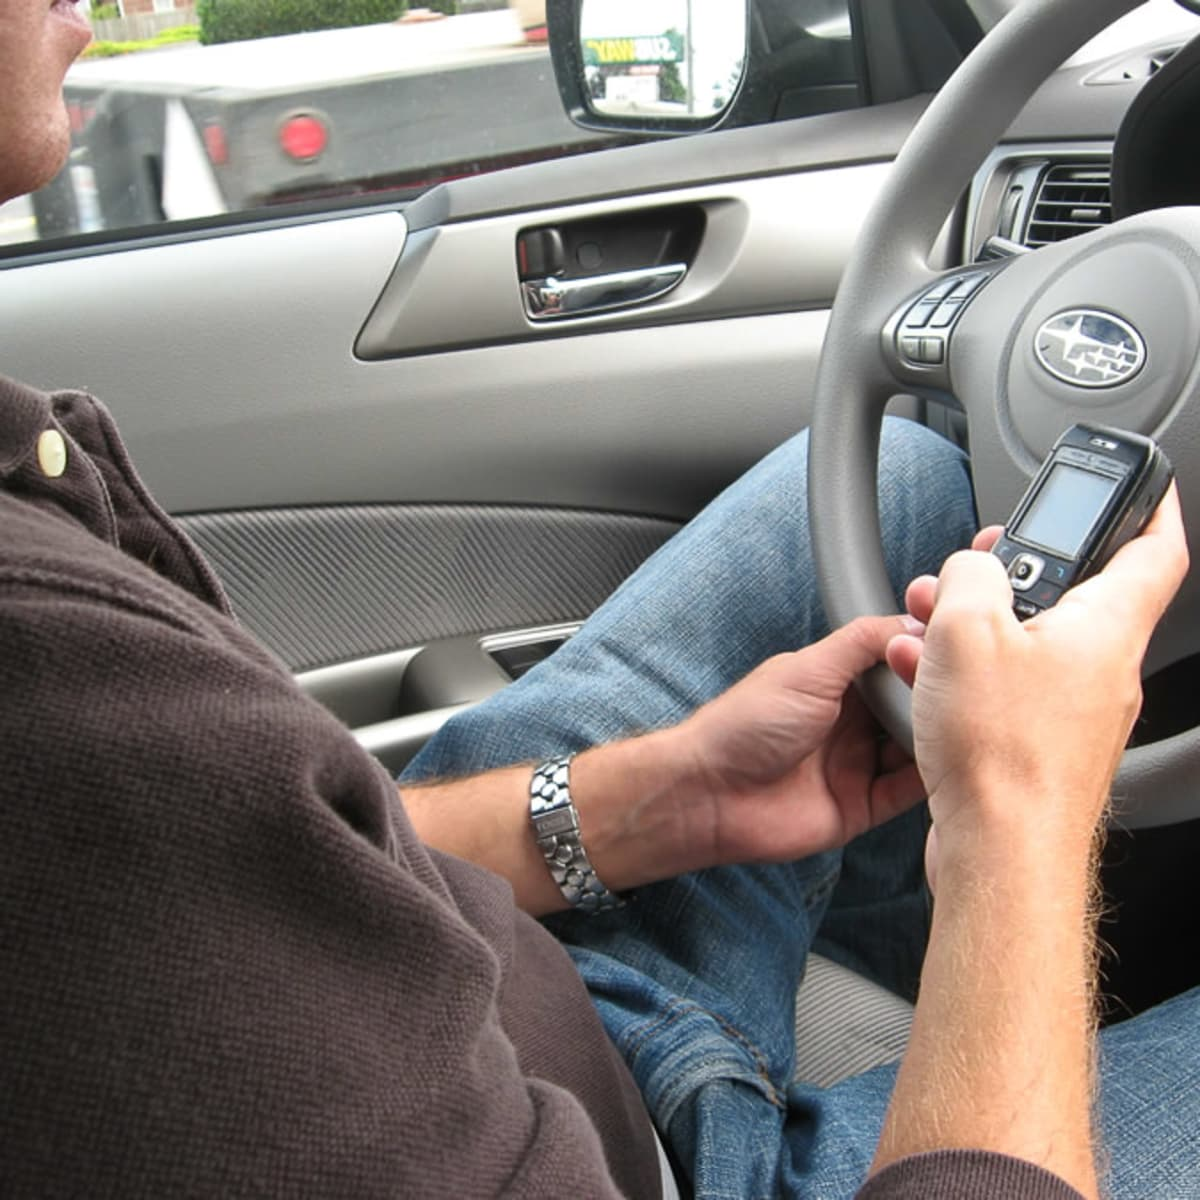 News_Driving and texting_Feb 10